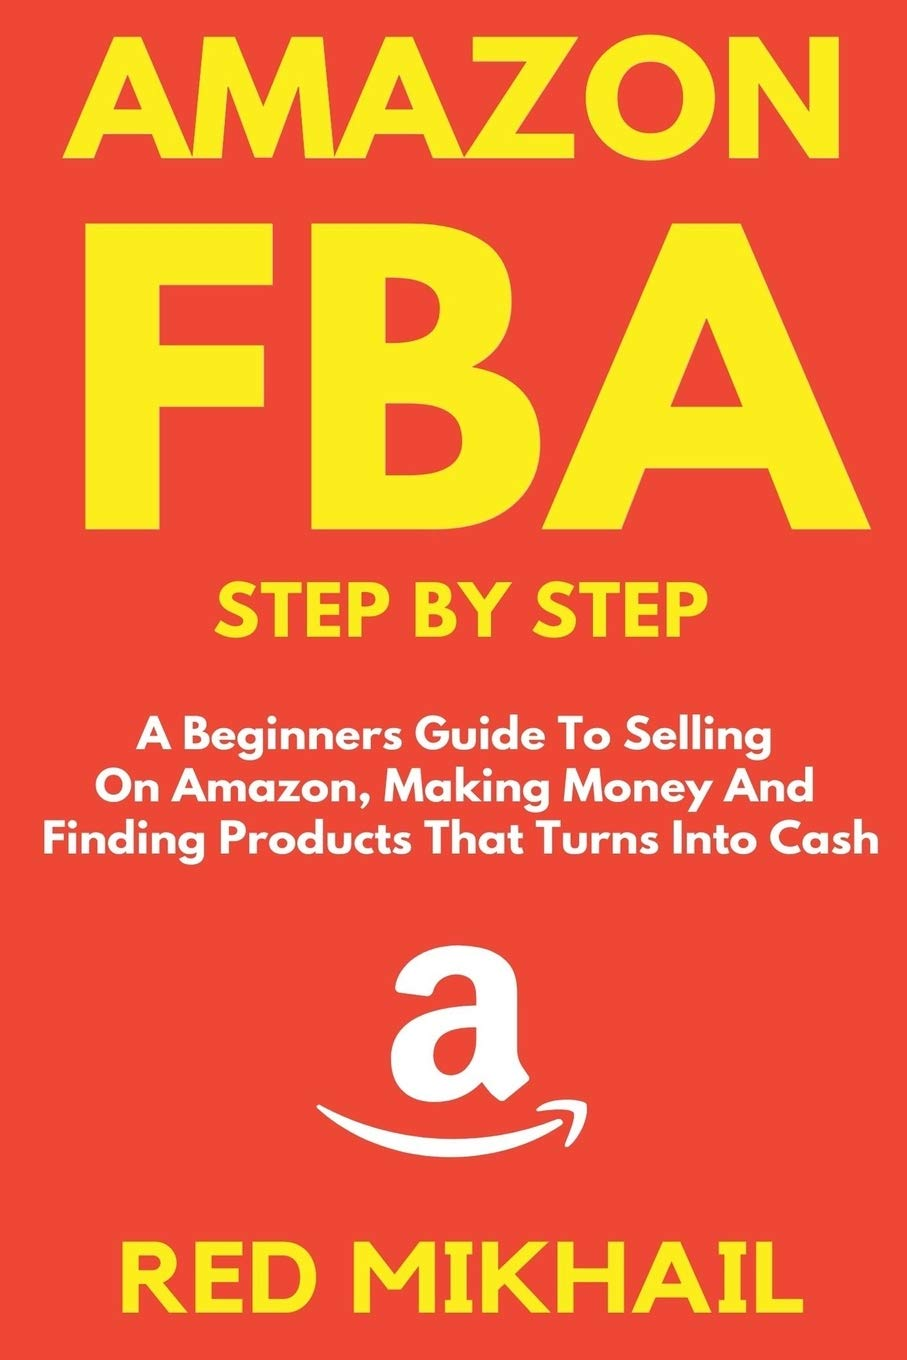 Image OfAMAZON FBA: A Beginners Guide To Selling On Amazon, Making Money And Finding Products That Turns Into Cash